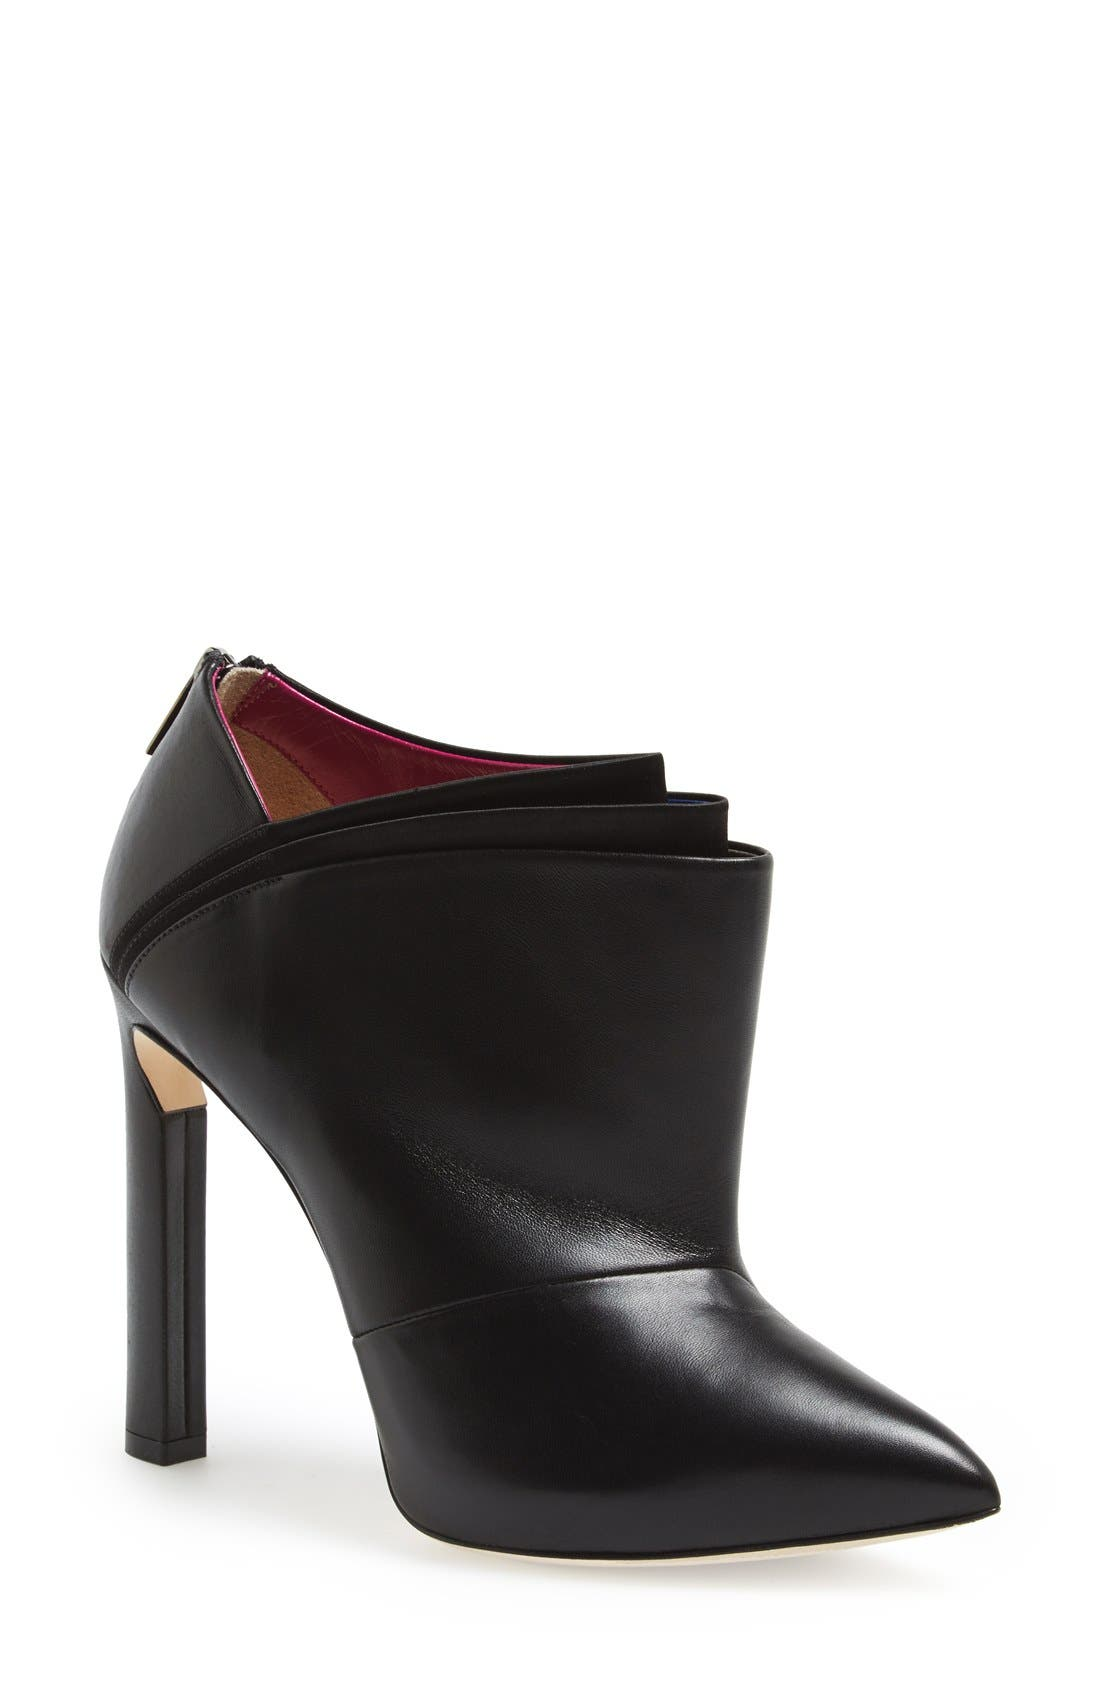 Main Image - Jimmy Choo 'Dwyer' Ankle Bootie (Women)